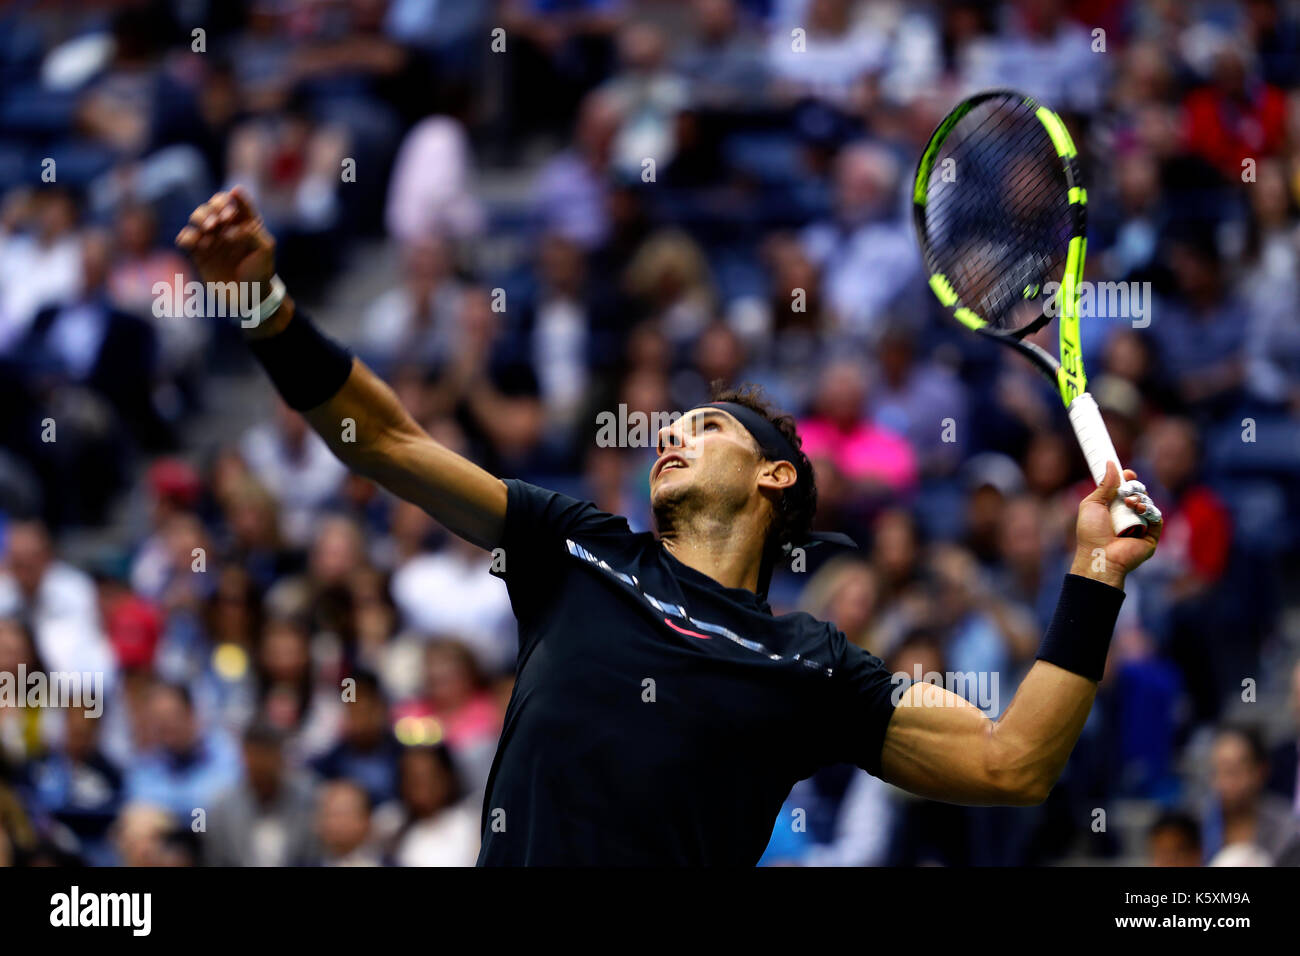 New York, United States. 10th Sep, 2017. US Open Tennis: New York, 10 September, 2017 - Rafael Nadal of Spain serving - Stock Image